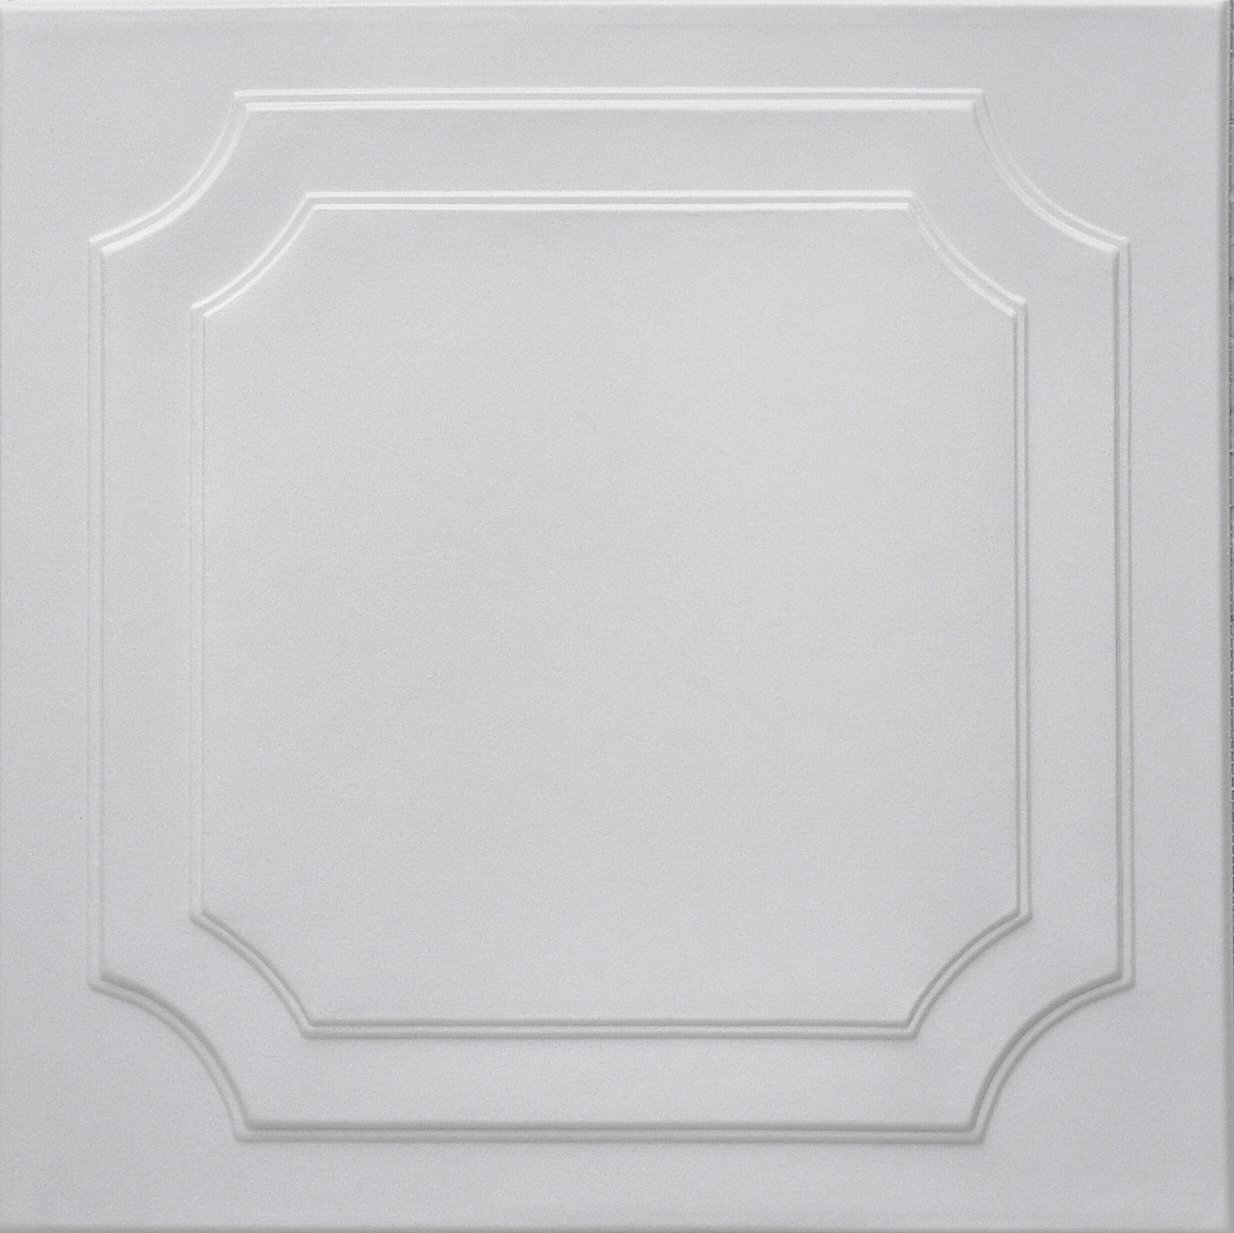 Easy to Install RM-08 Polystyrene (Styrofoam) Decorative Ceiling Tiles to Cover Popcorn Or Any Flat Surface Ceiling. Pack of 8 White Ceiling Tiles. Sale!!! TRM